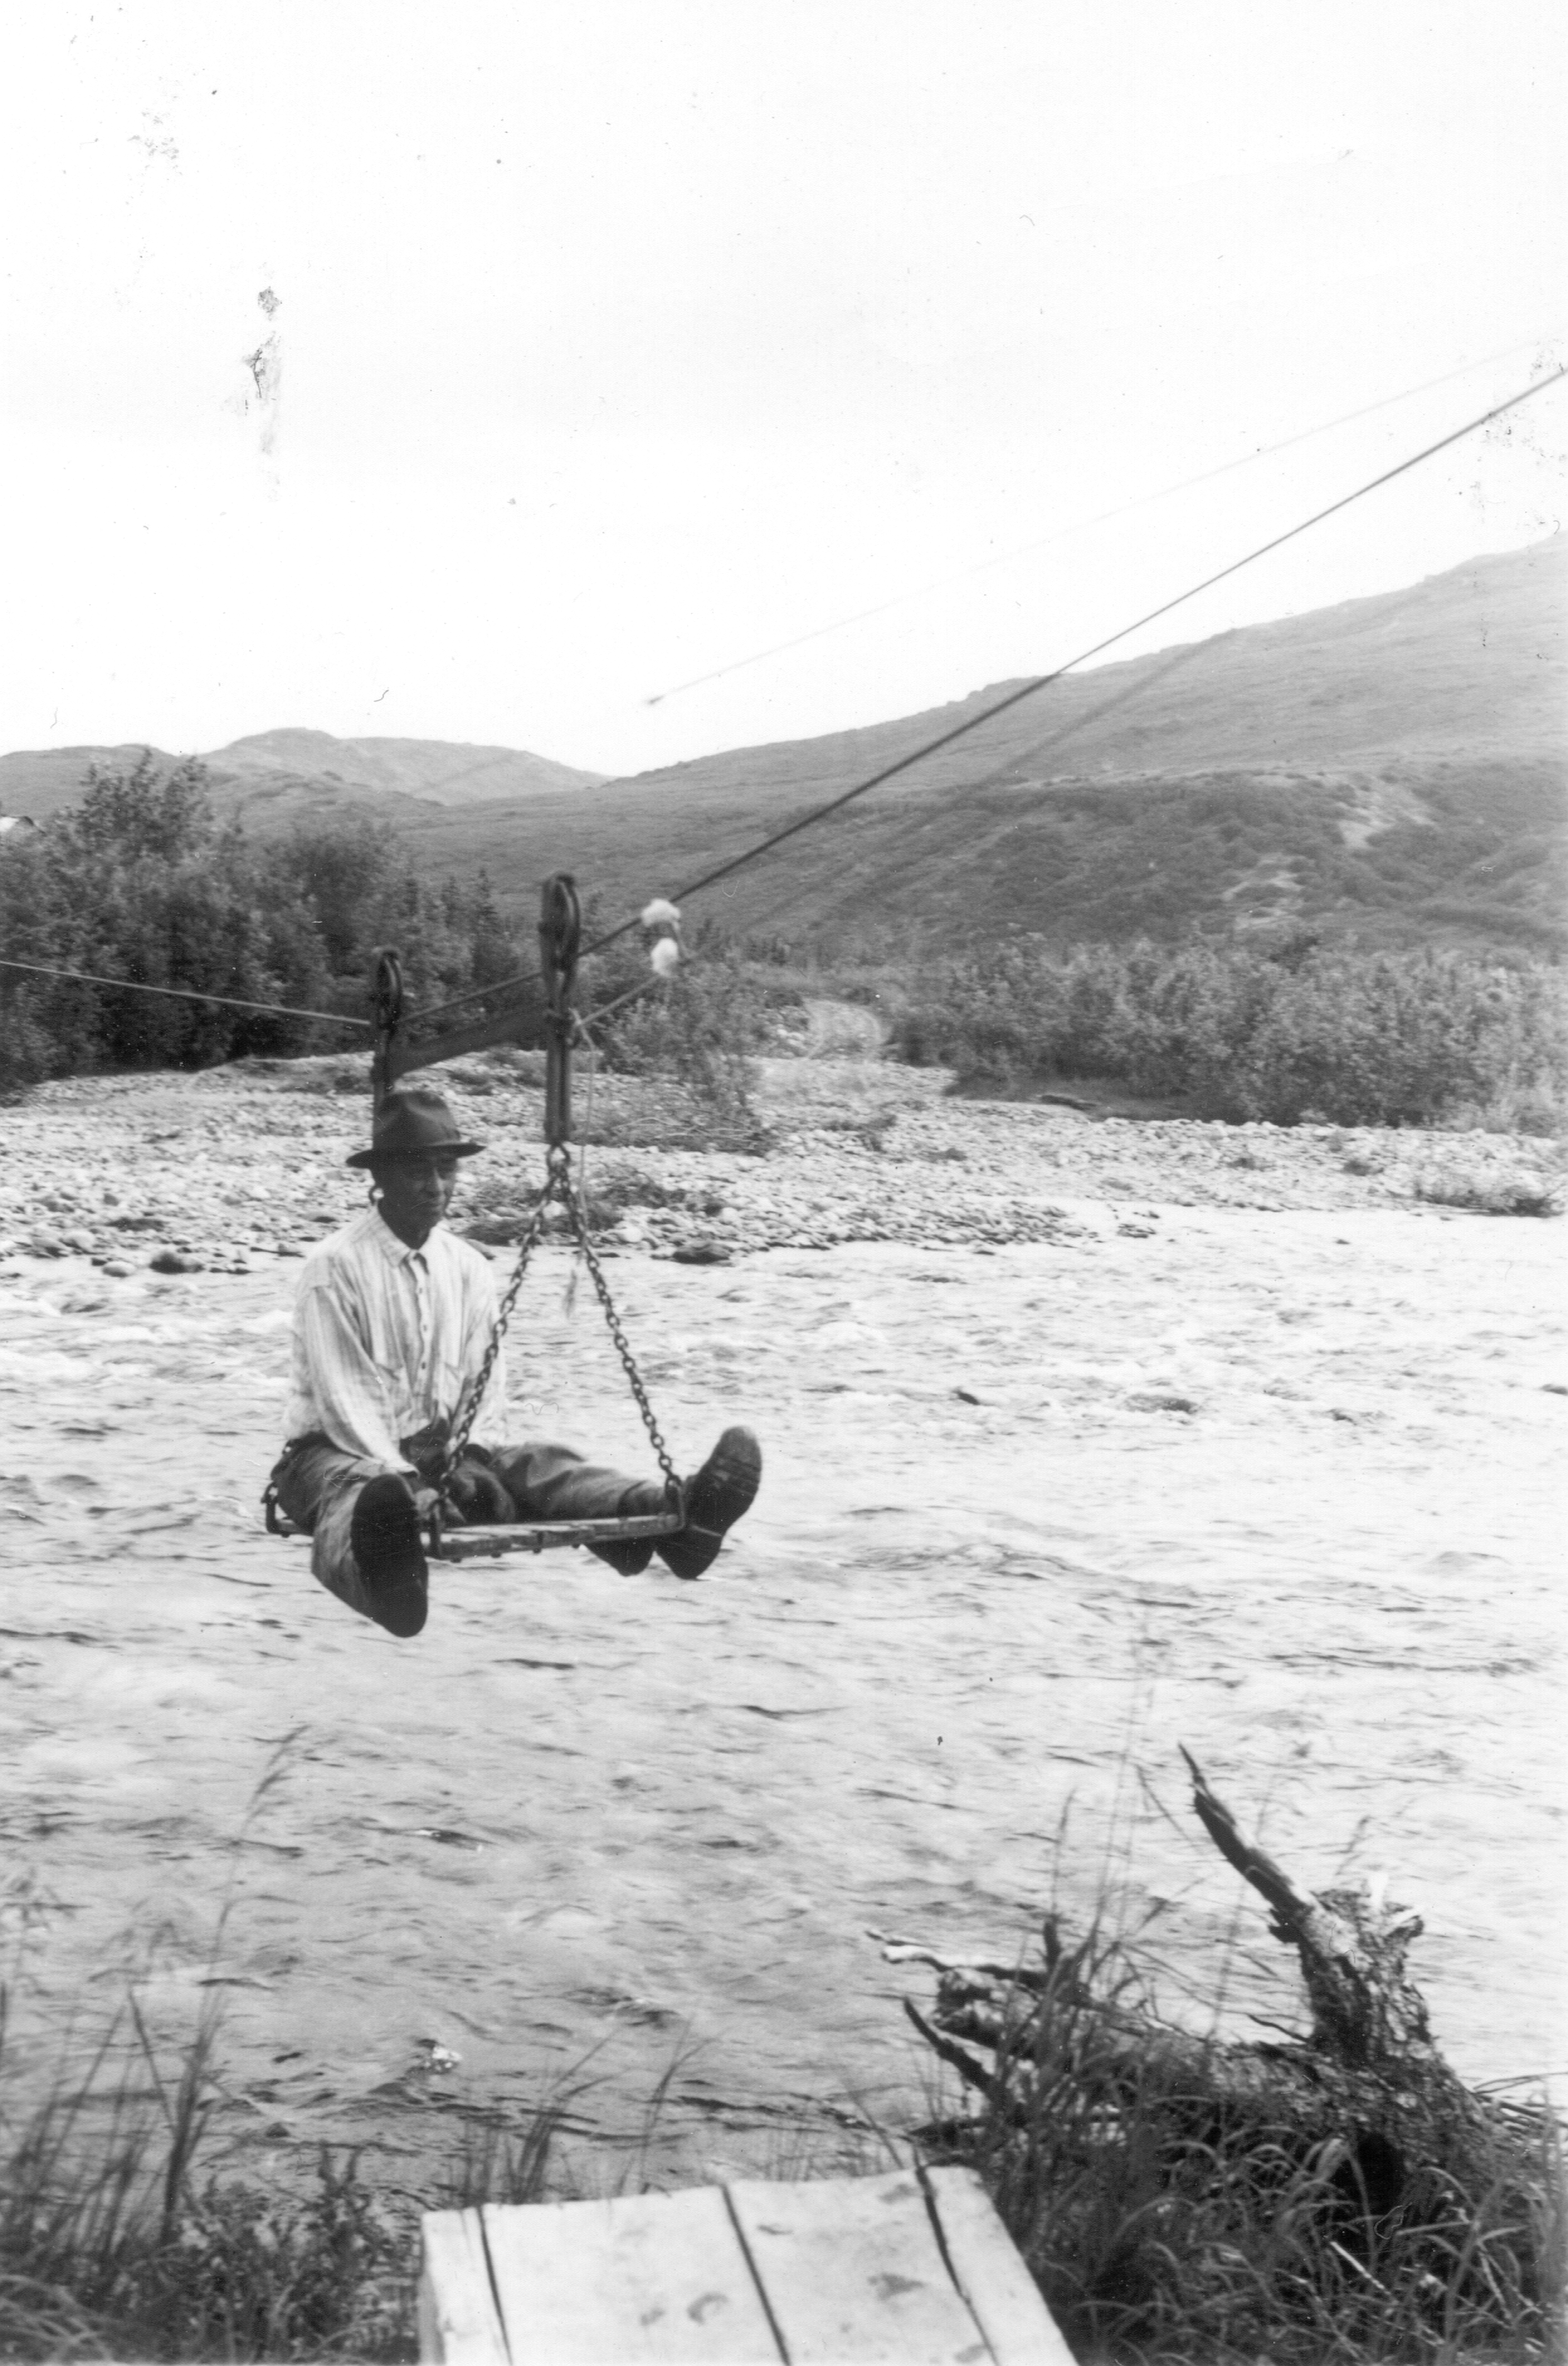 man riding on a tramway over a creek